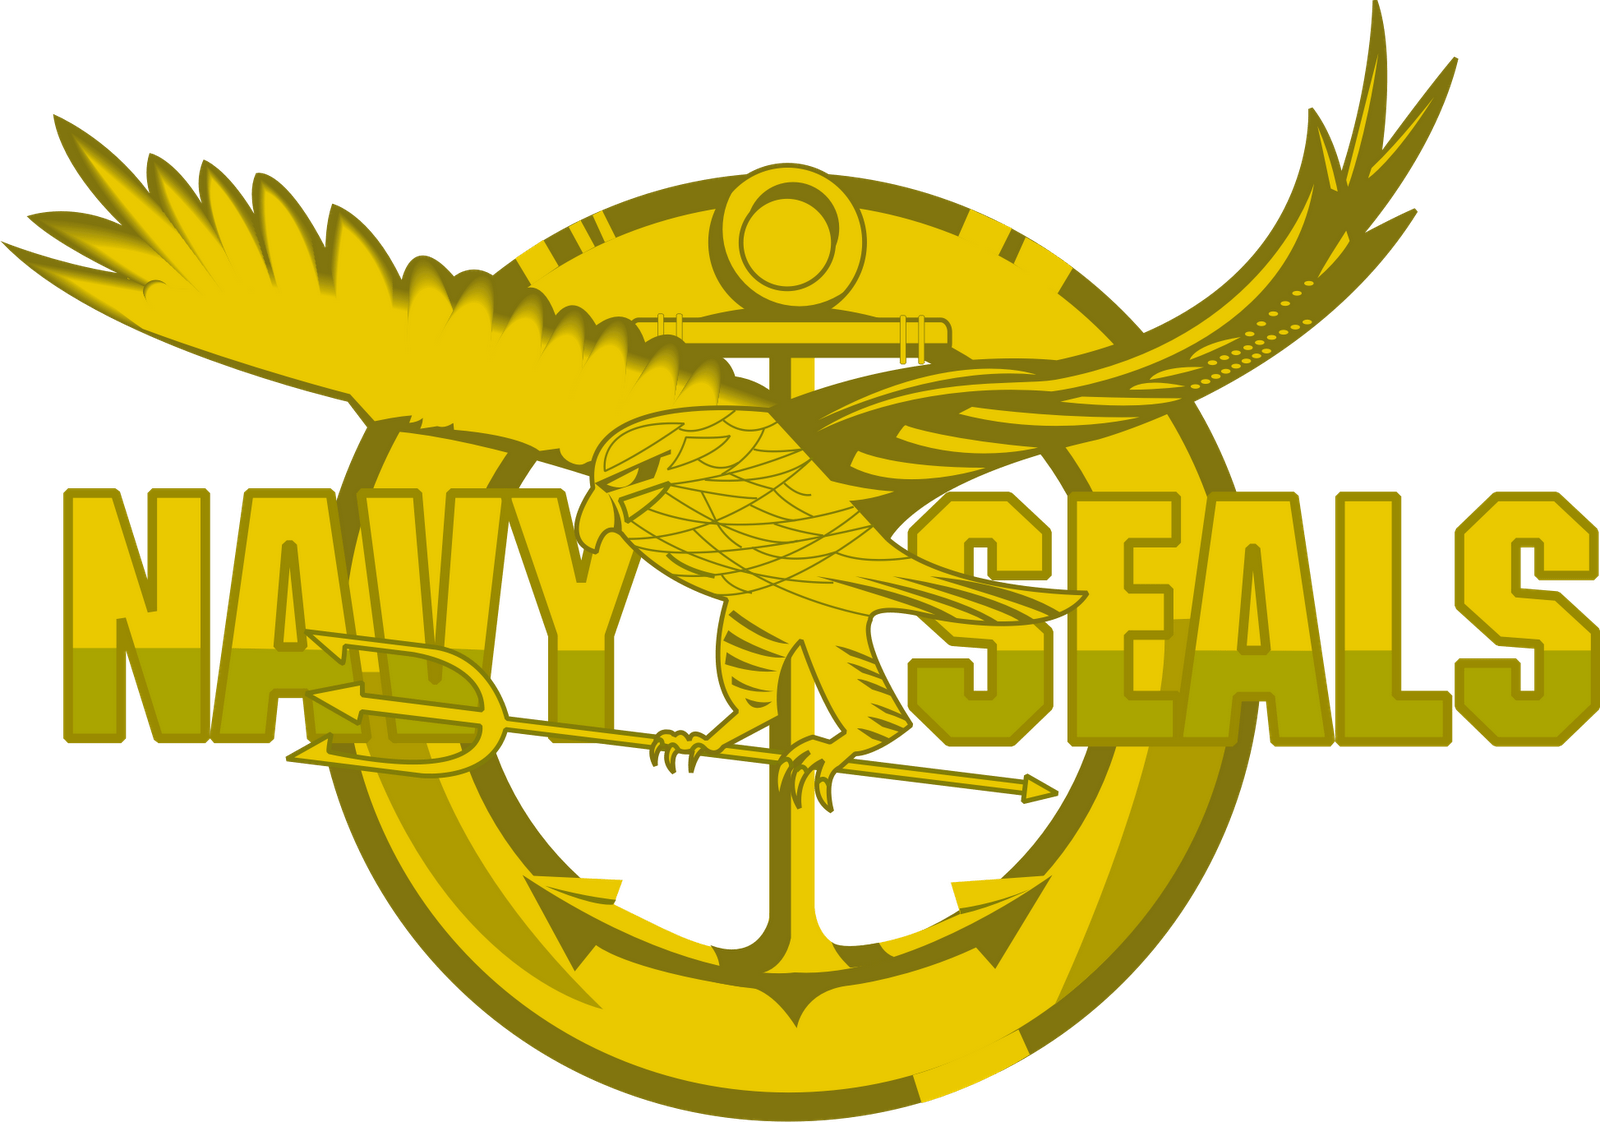 Free Life Quotes Wallpaper Downloads Download Navy Seals Logo Wallpaper Gallery